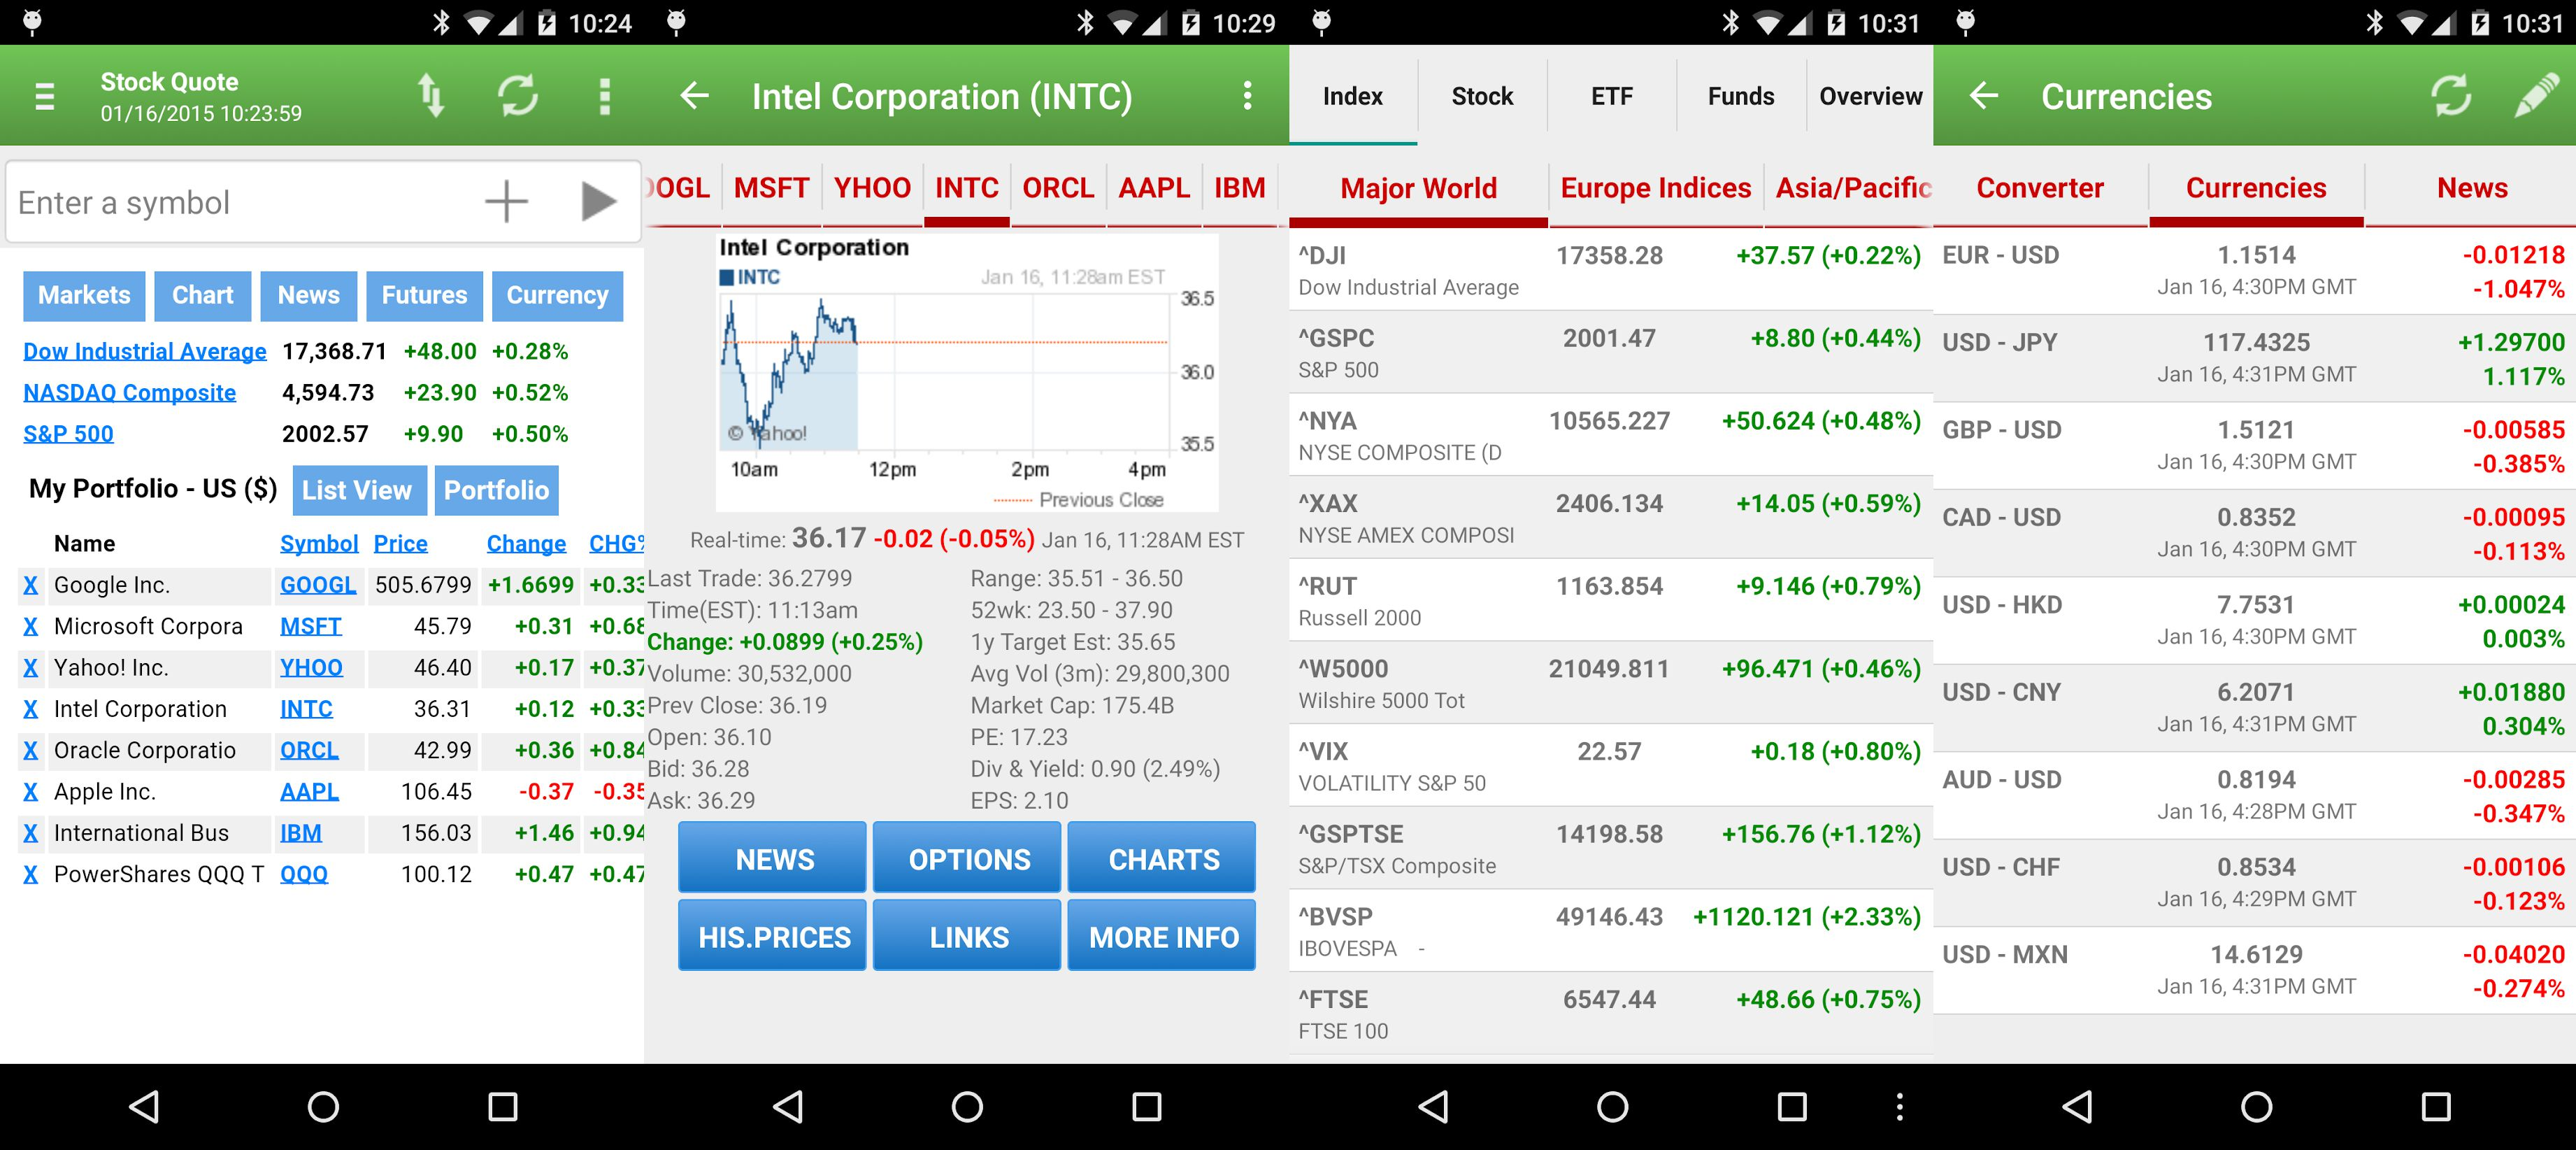 The 10 Best Stock Market Apps for Android in 2019